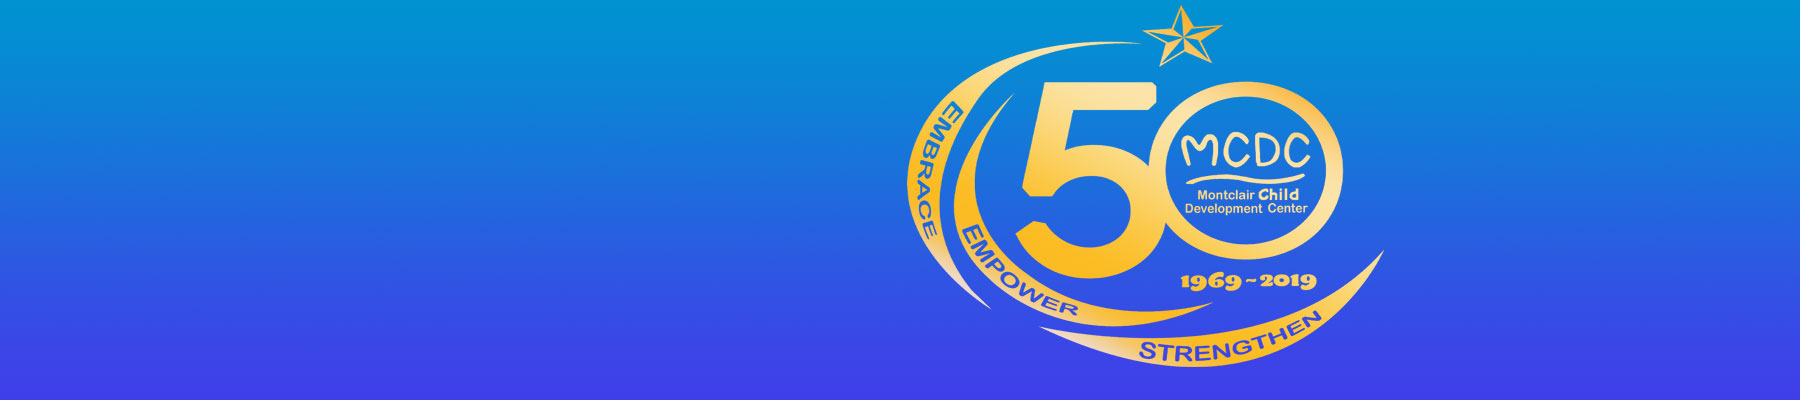 50 Years of Excellence!